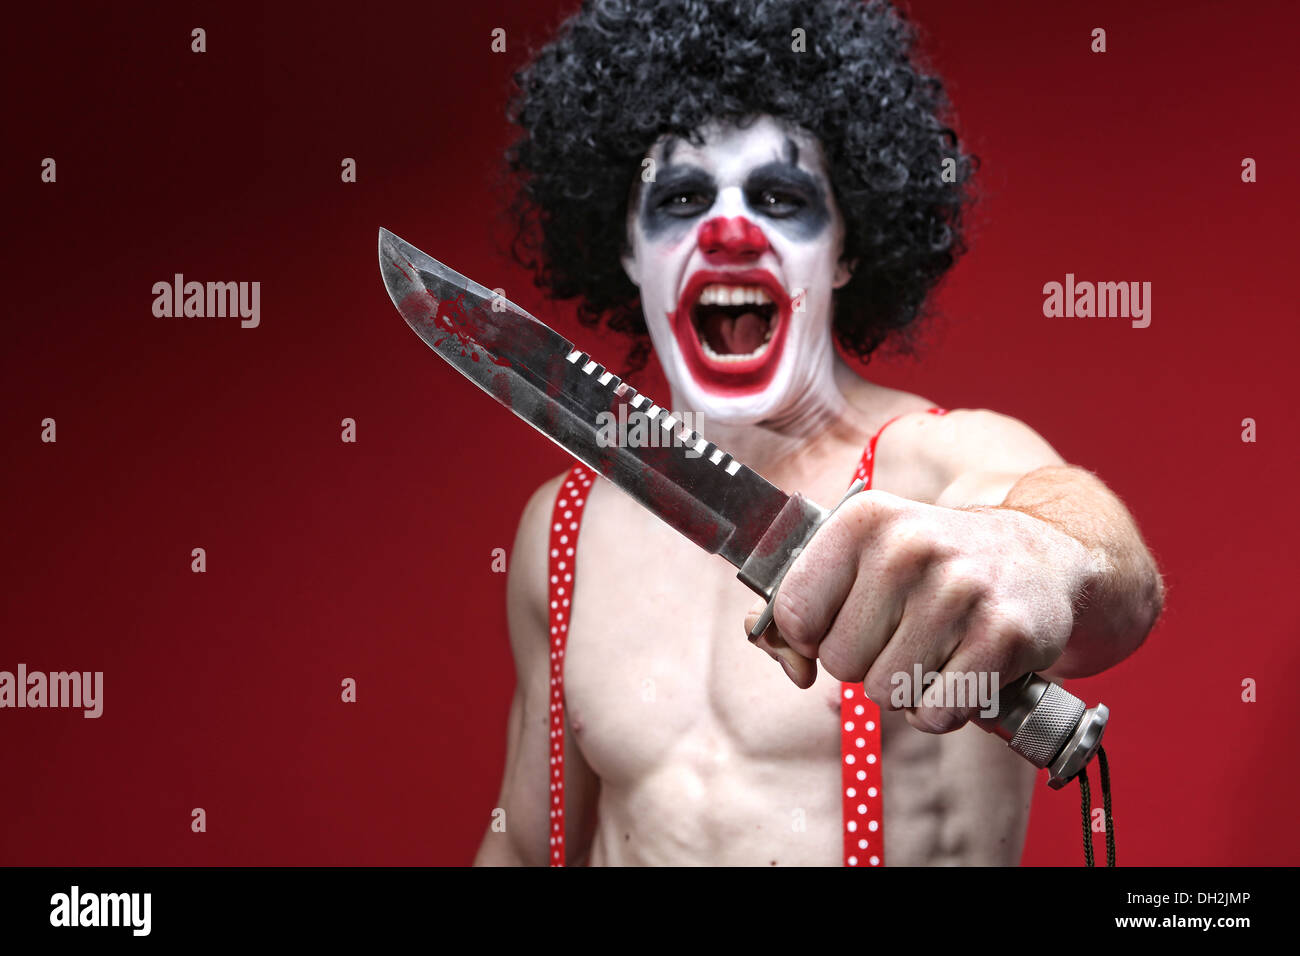 Evil Spooky Clown Portrait Holding Knife - Stock Image